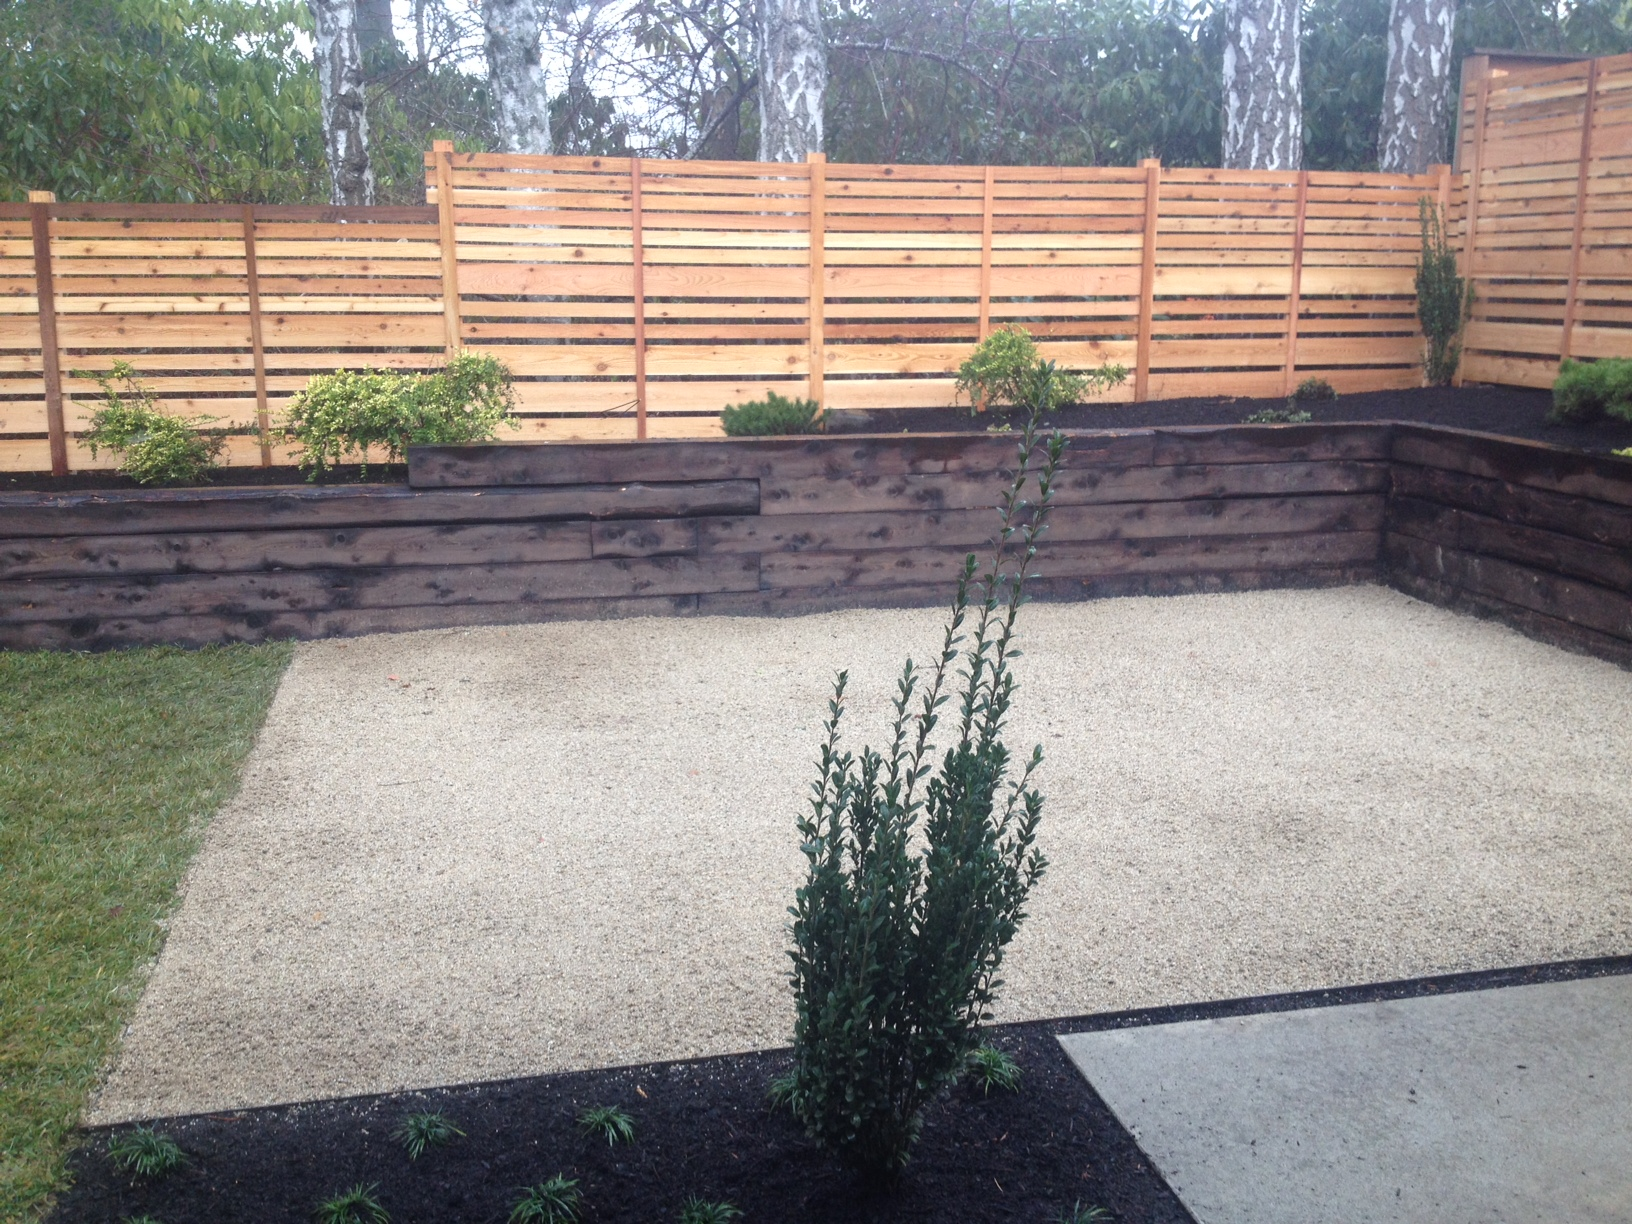 Shou-sugi-ban finish on a juniper retaining wall.